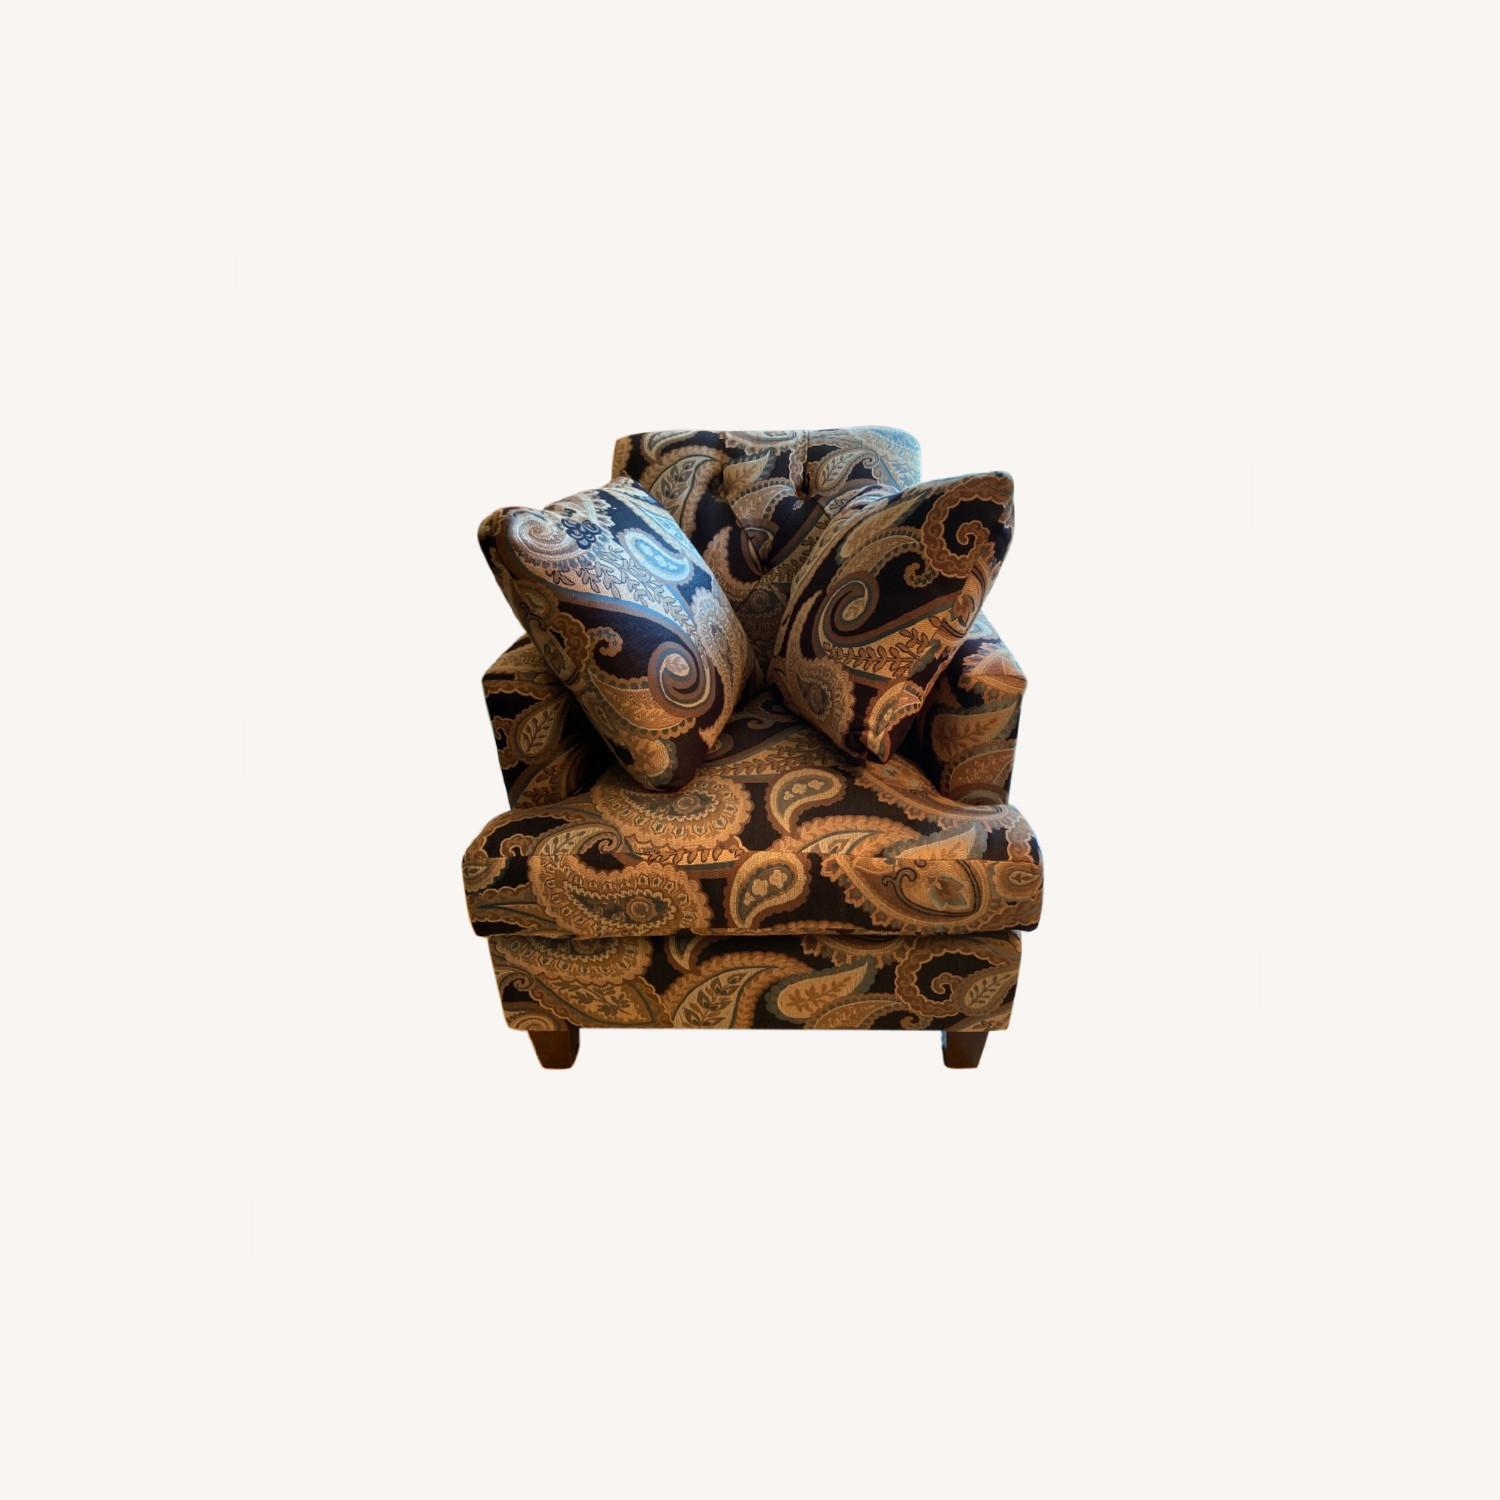 Blue Patterned Chair with Matching Pillows - image-0